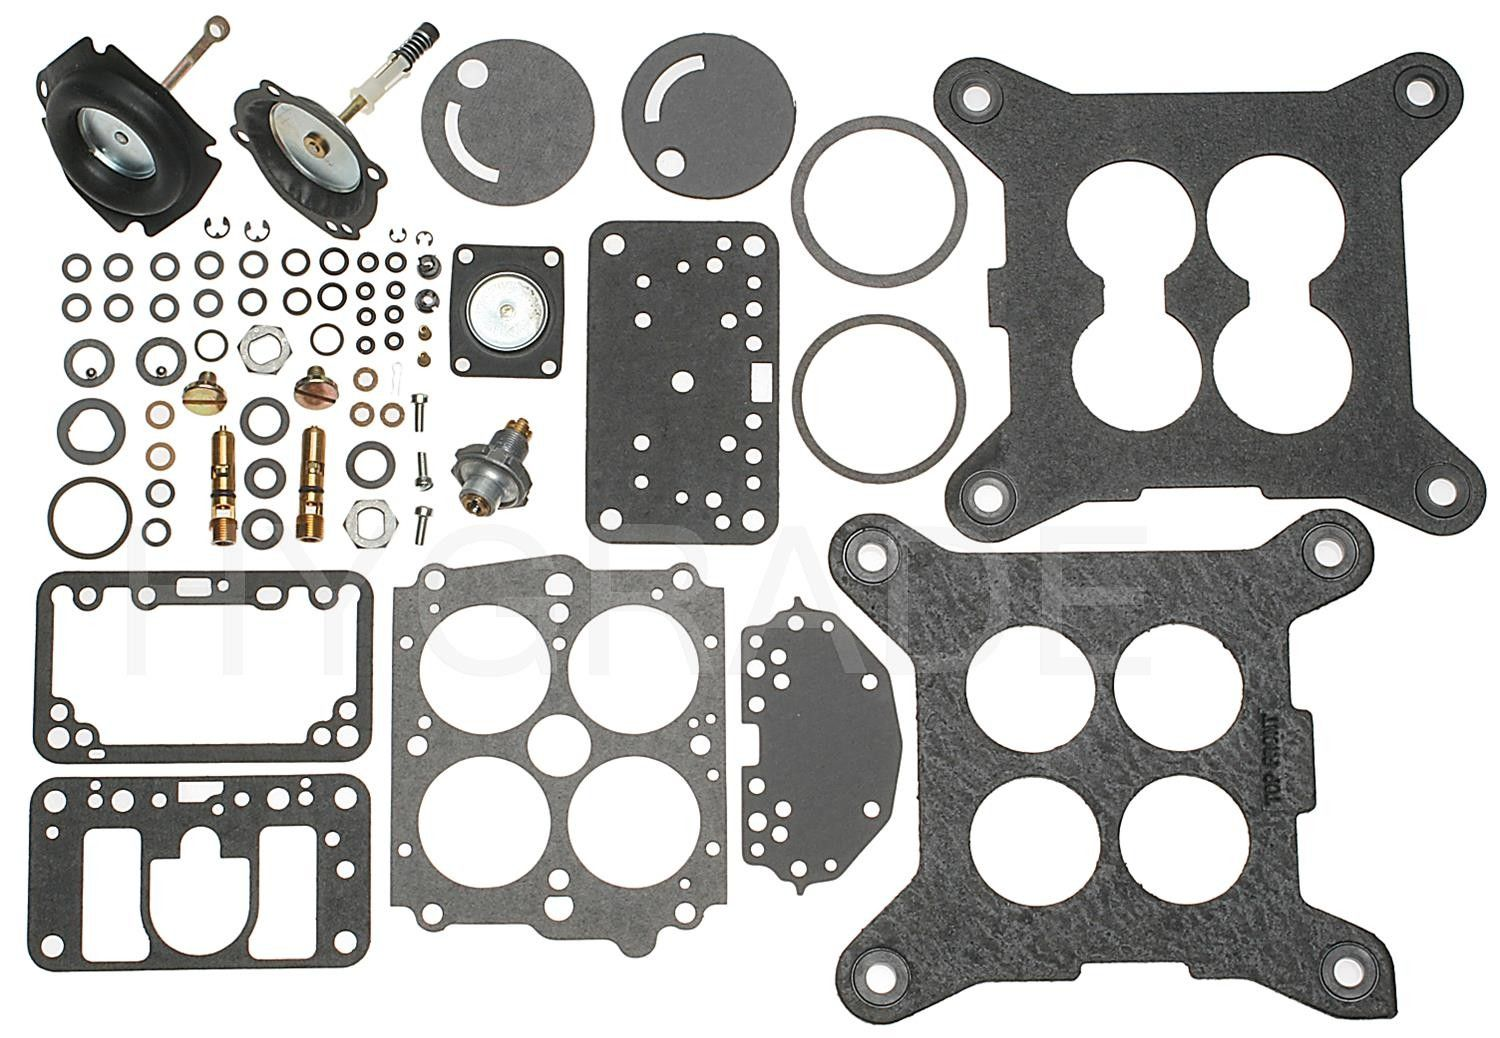 Ford F 250 Carburetor Repair Kit Replacement Hygrade Walker Go Wiring Harness Kits 1986 8 Cyl 75l 1479b With Holley Carb 4180 E5he Db Dc Dd Eb Ec Ed Lb Lc Mb Mc R50259 3a R50260